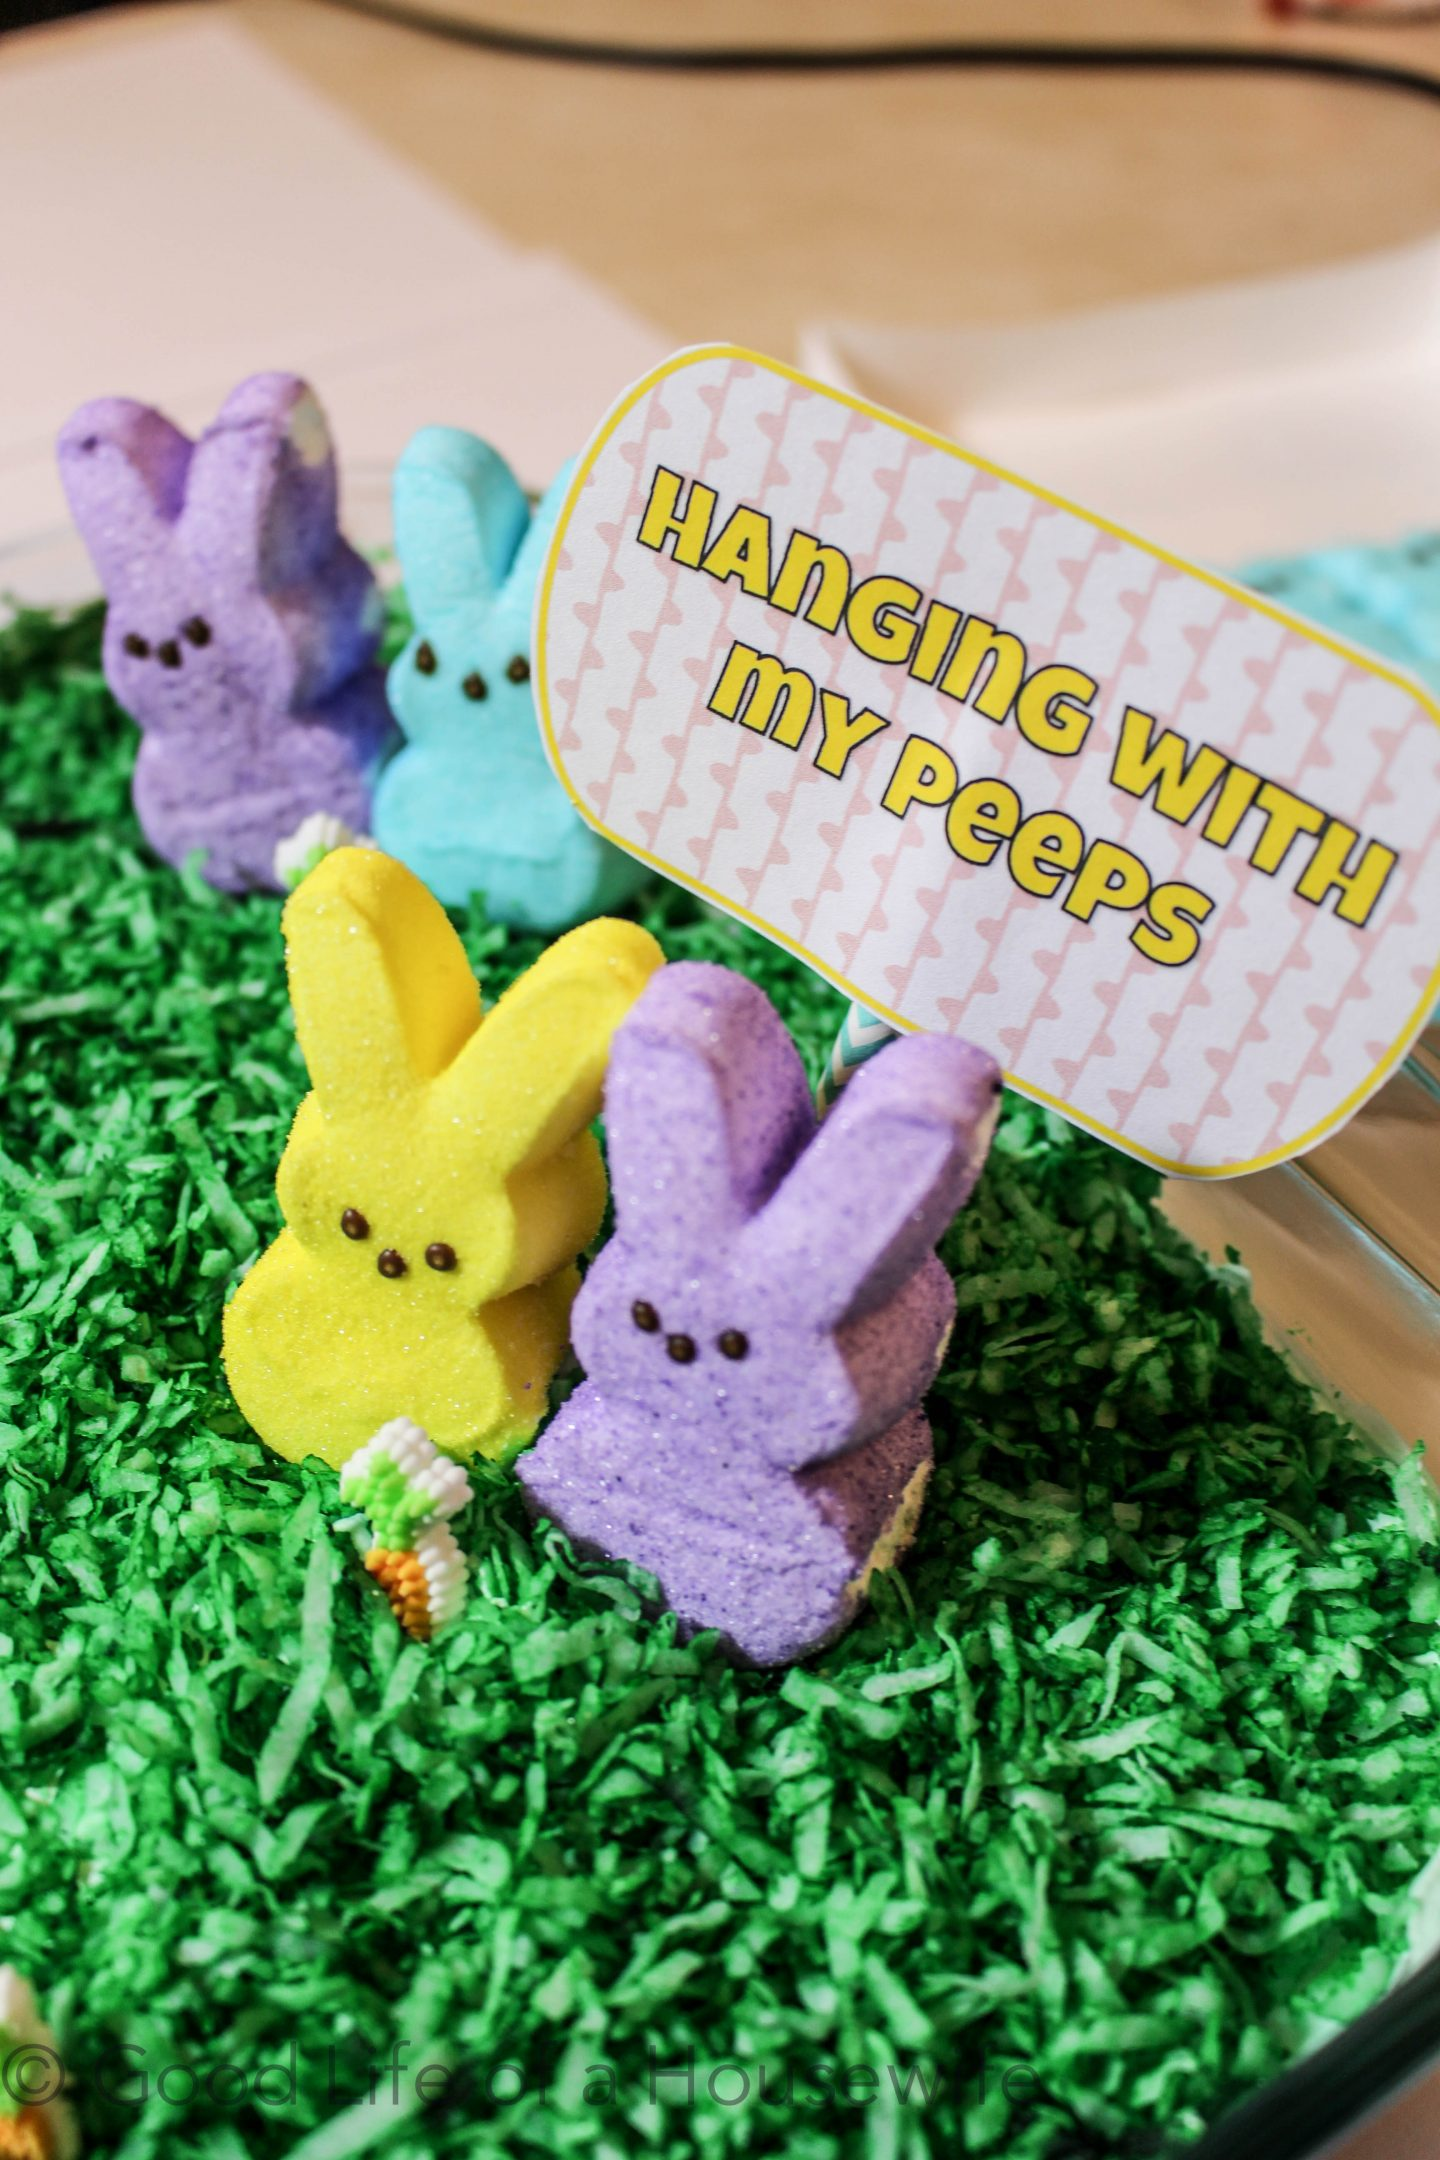 Hanging with My Peeps Cake